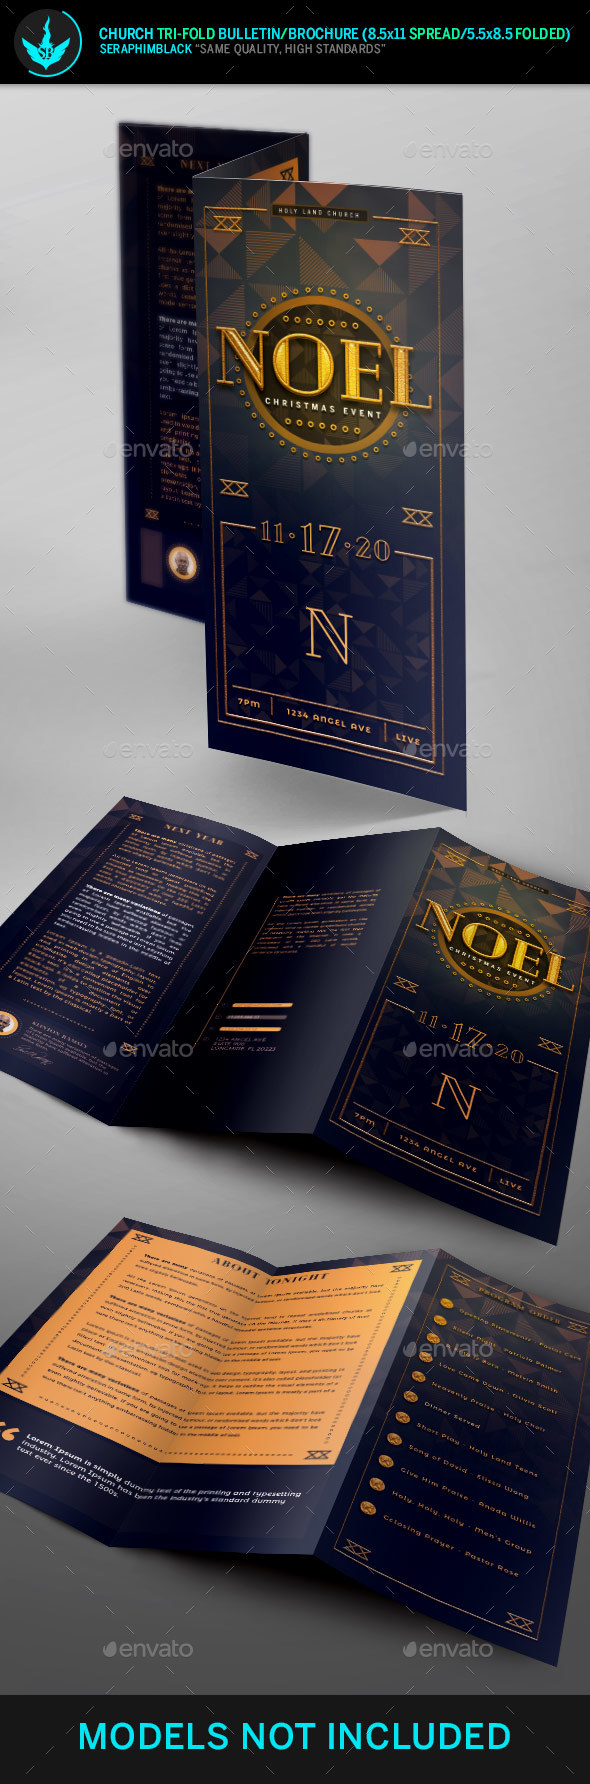 GraphicRiver Noel Christmas Gala Tri-Fold Program Template 21117903